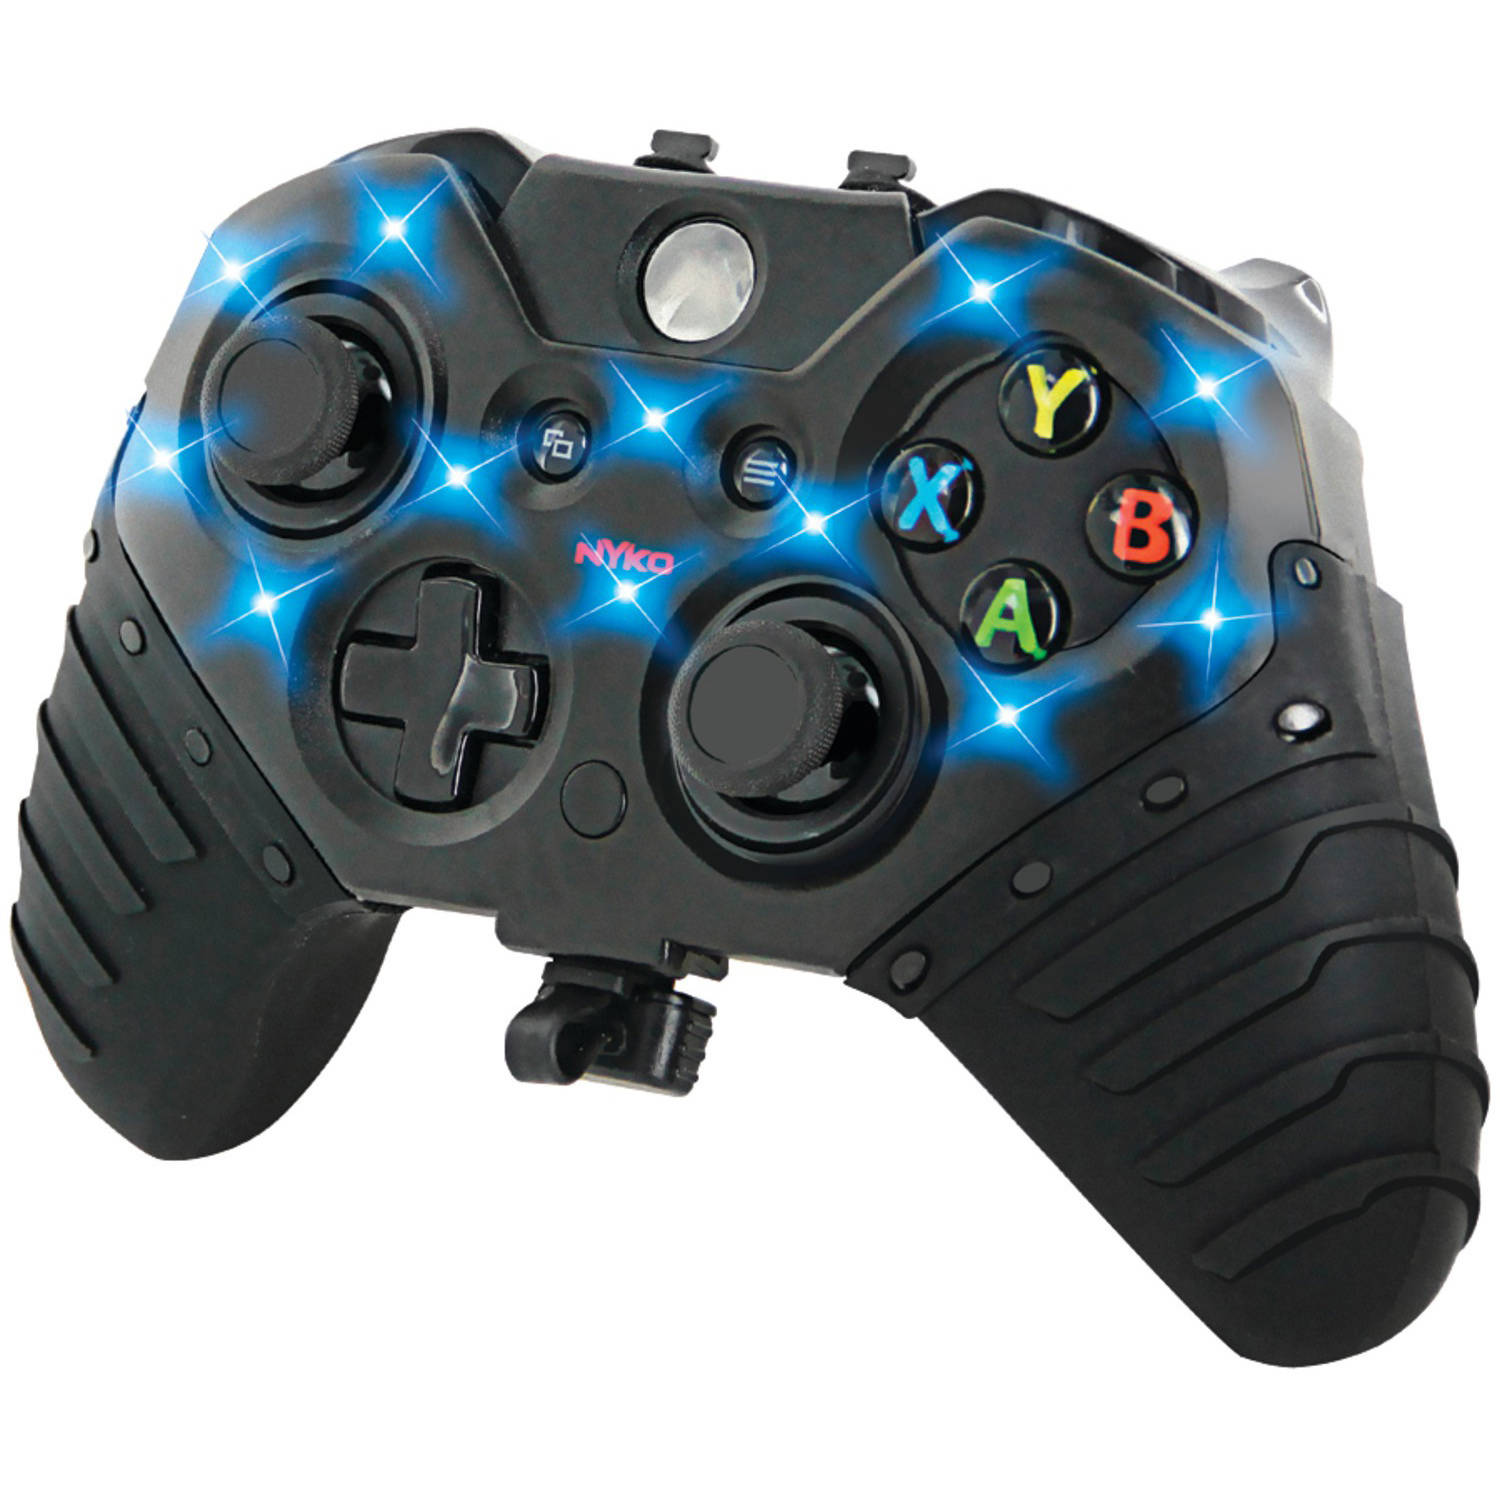 Nyko Light Grip For Xbox One - Gaming Controller (86122)